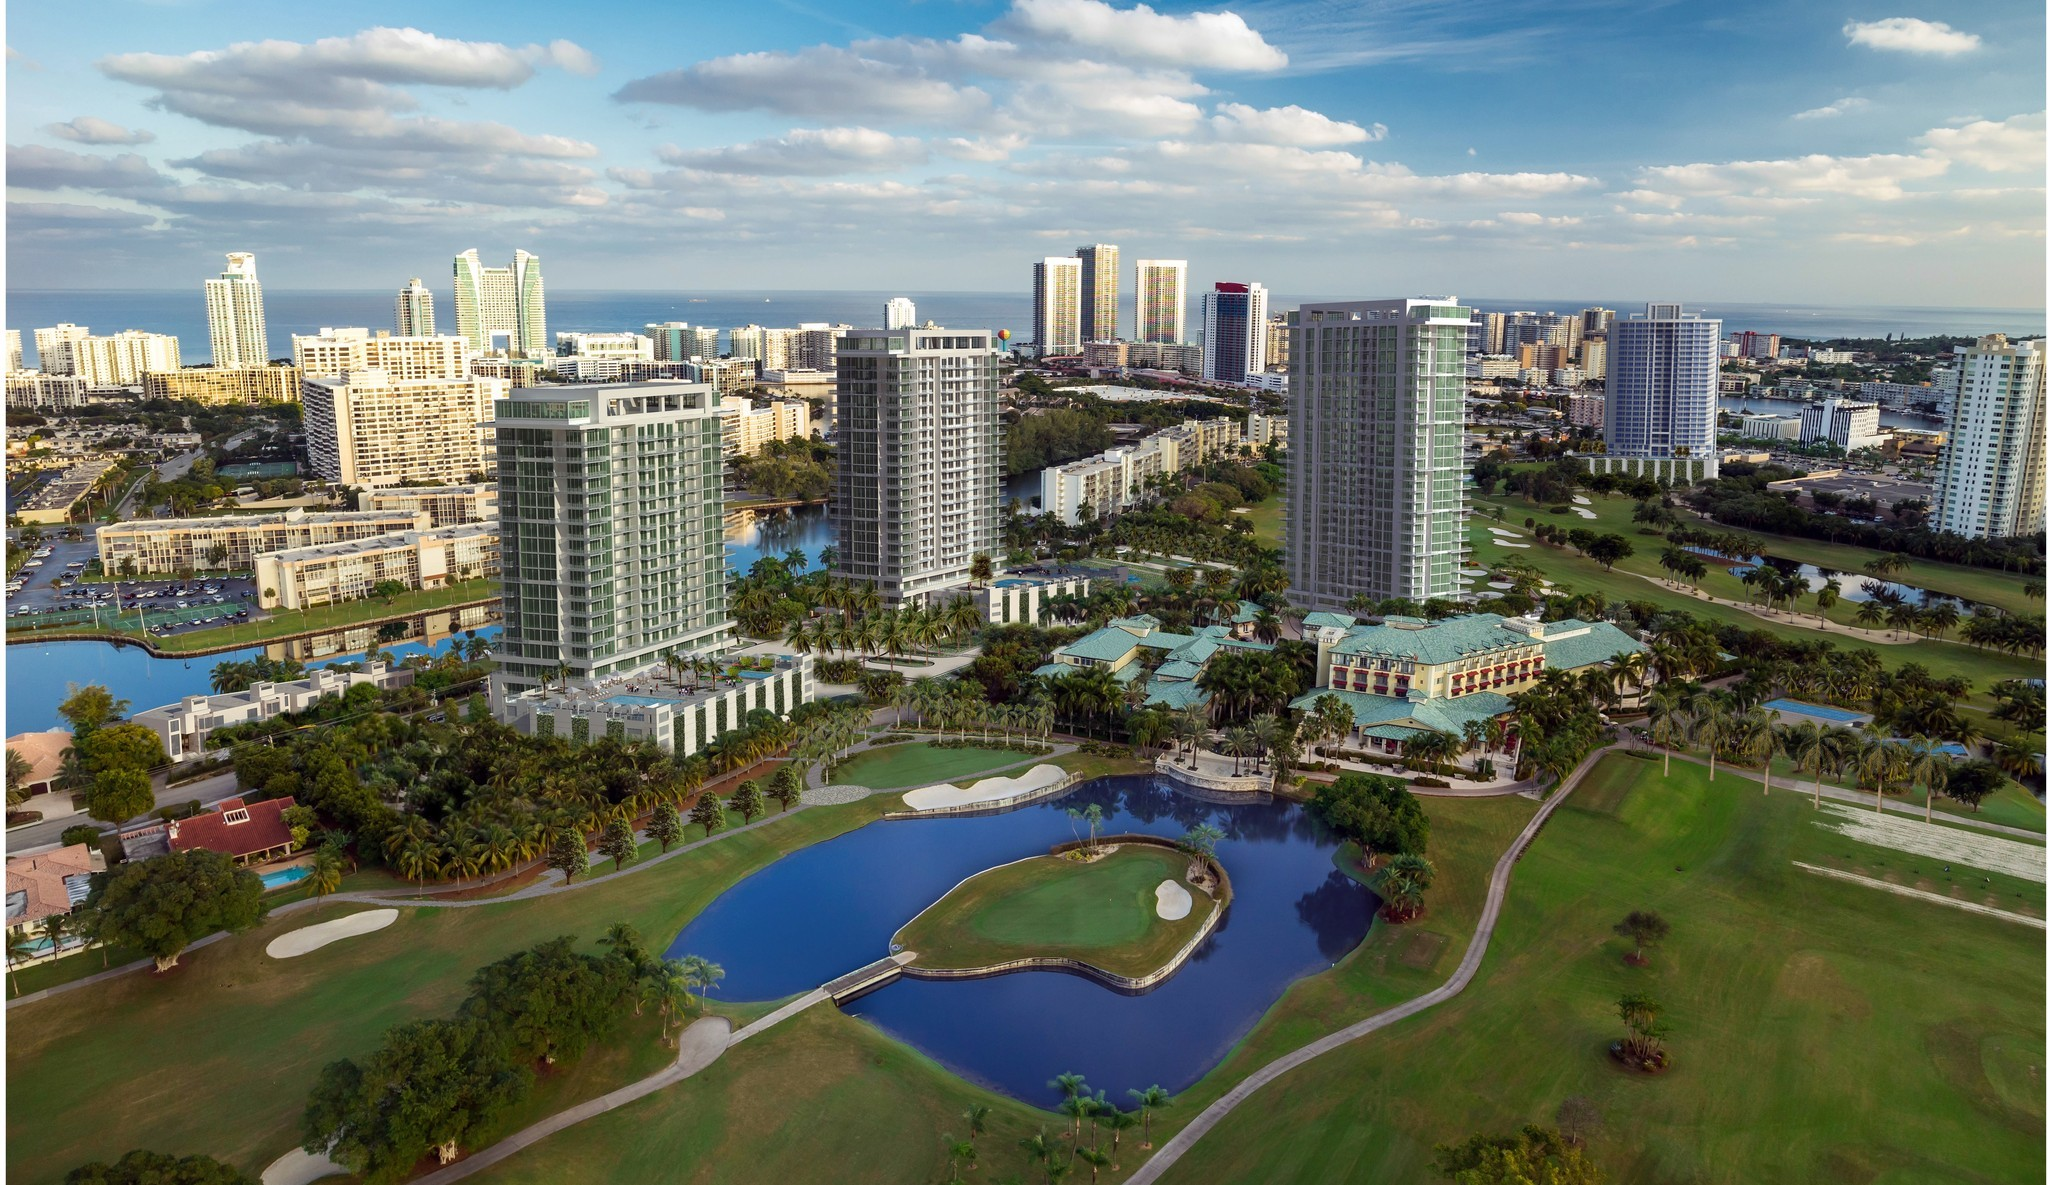 Hallandale Beach, FL Hotel - Best Western Plus Hollywood